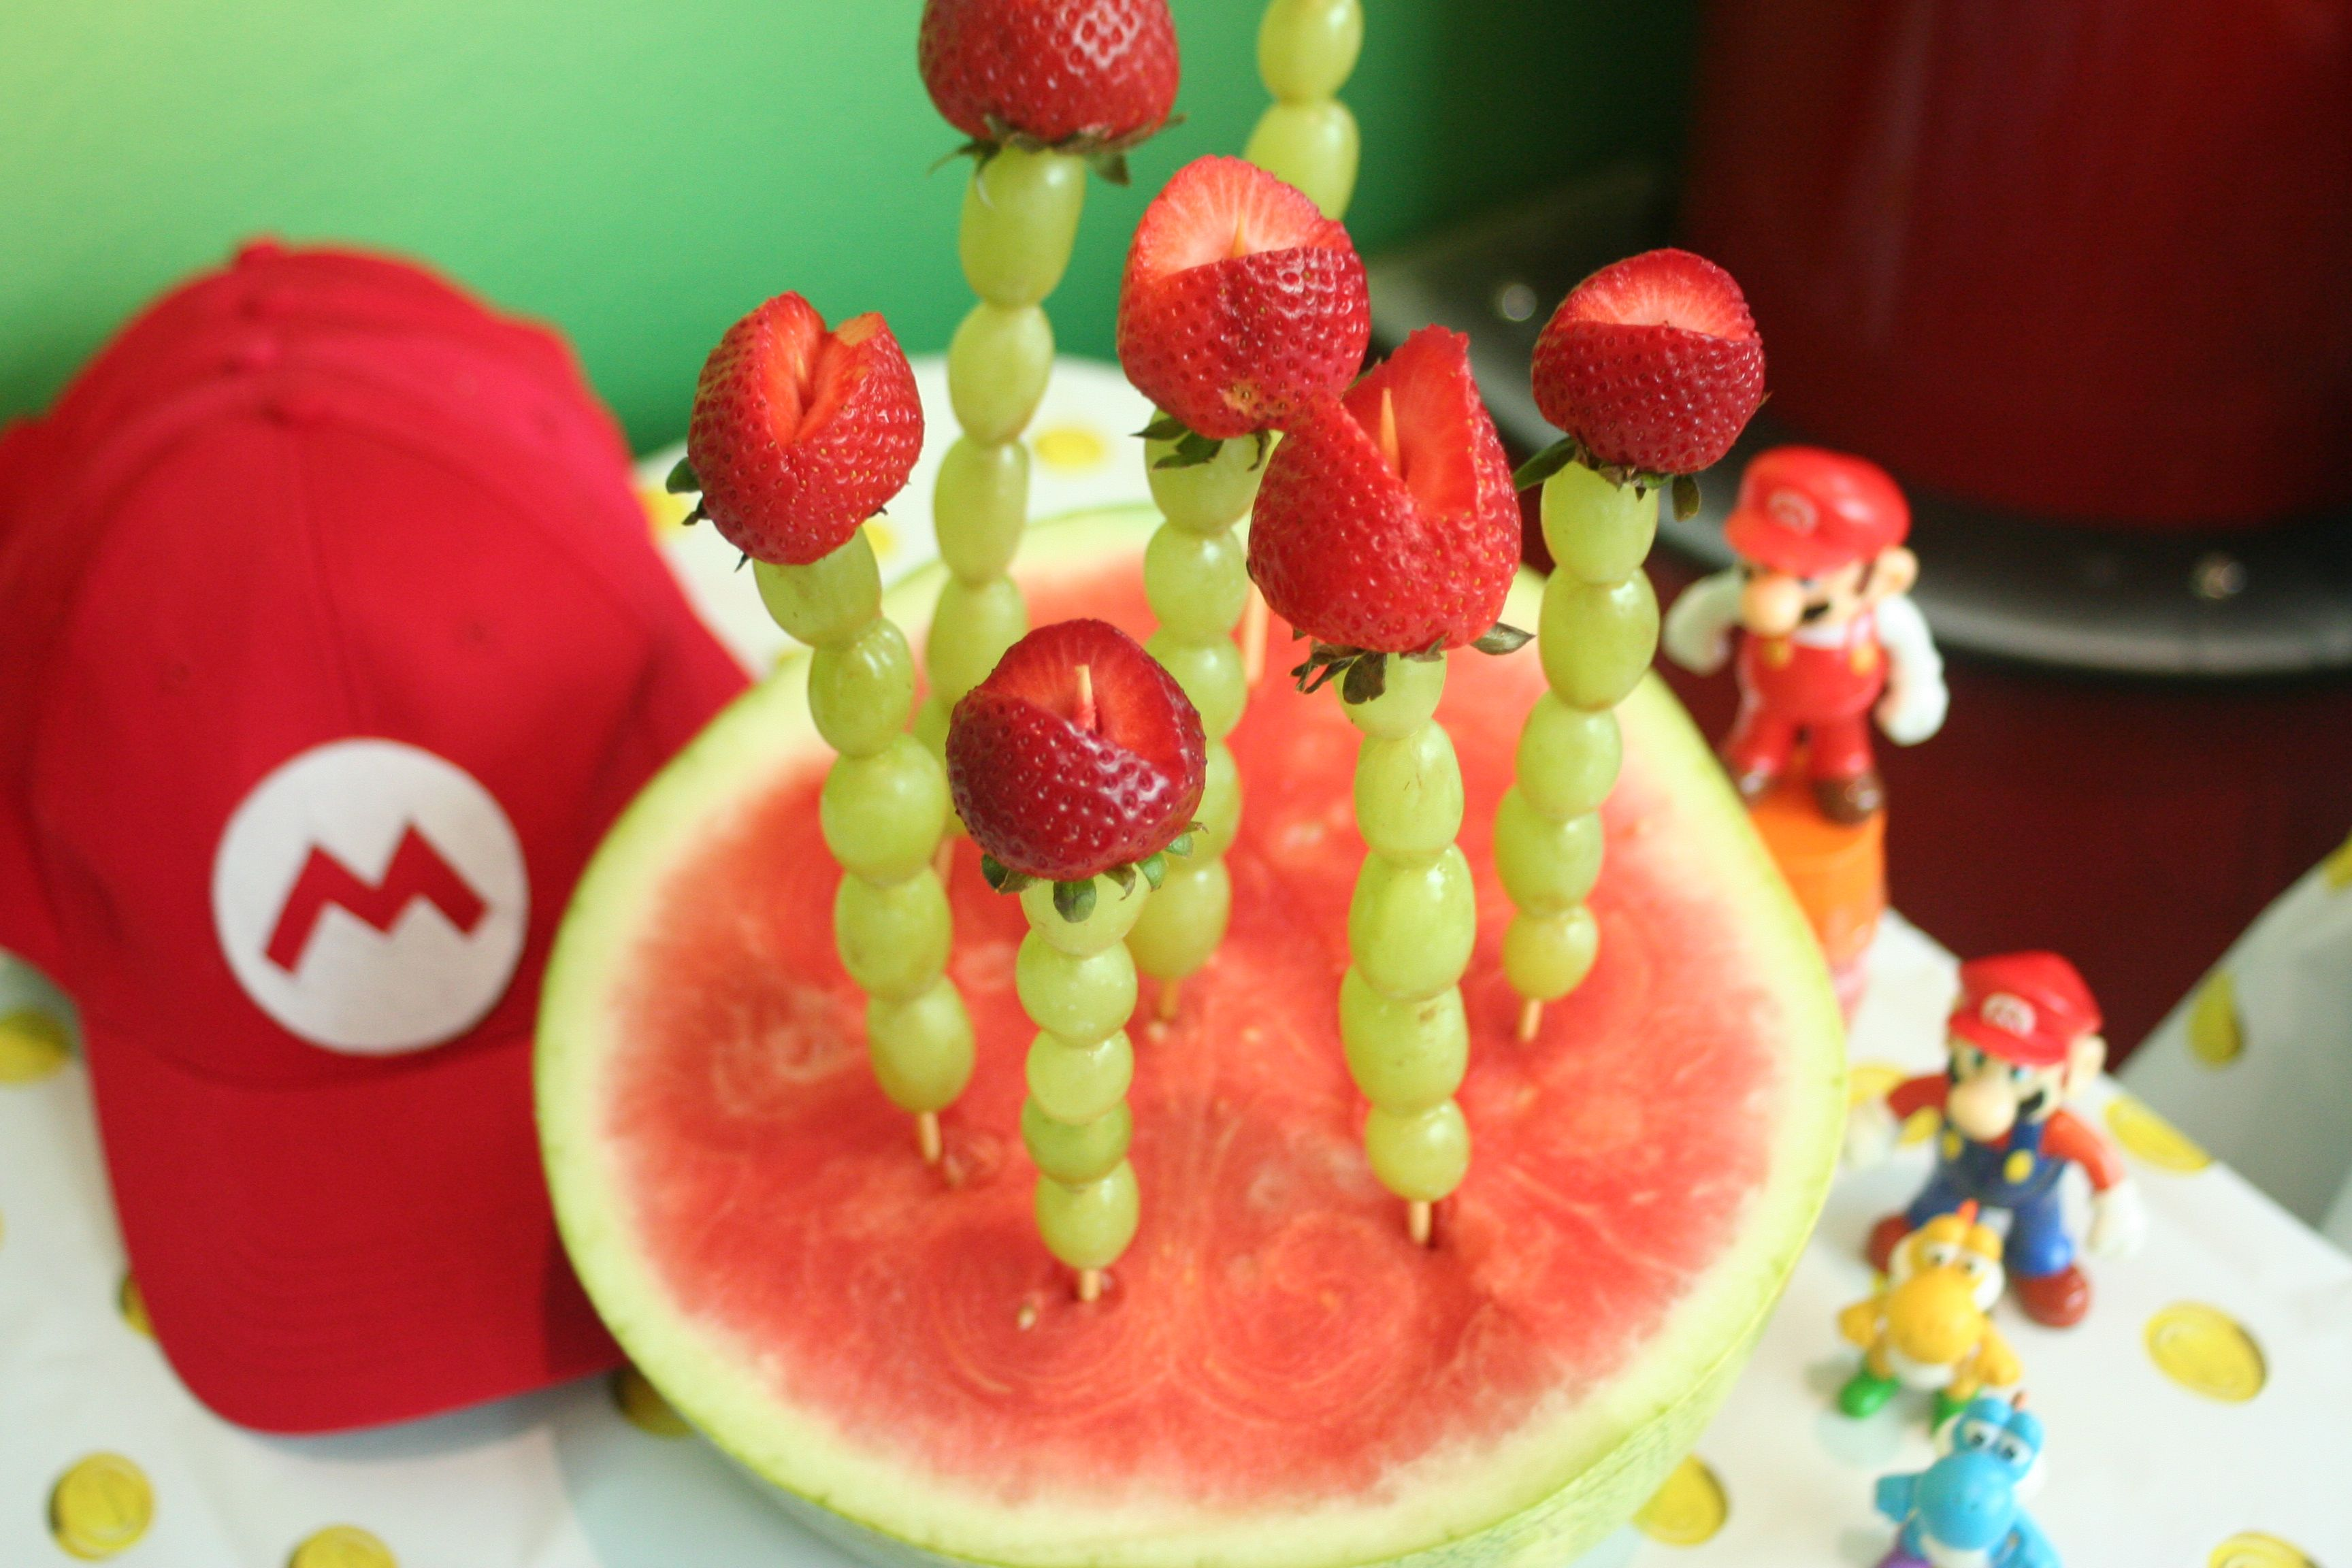 Super Mario Piranha vines! skewers, green grapes and strawberries. Easy and a show stopper! :) #SuperMario